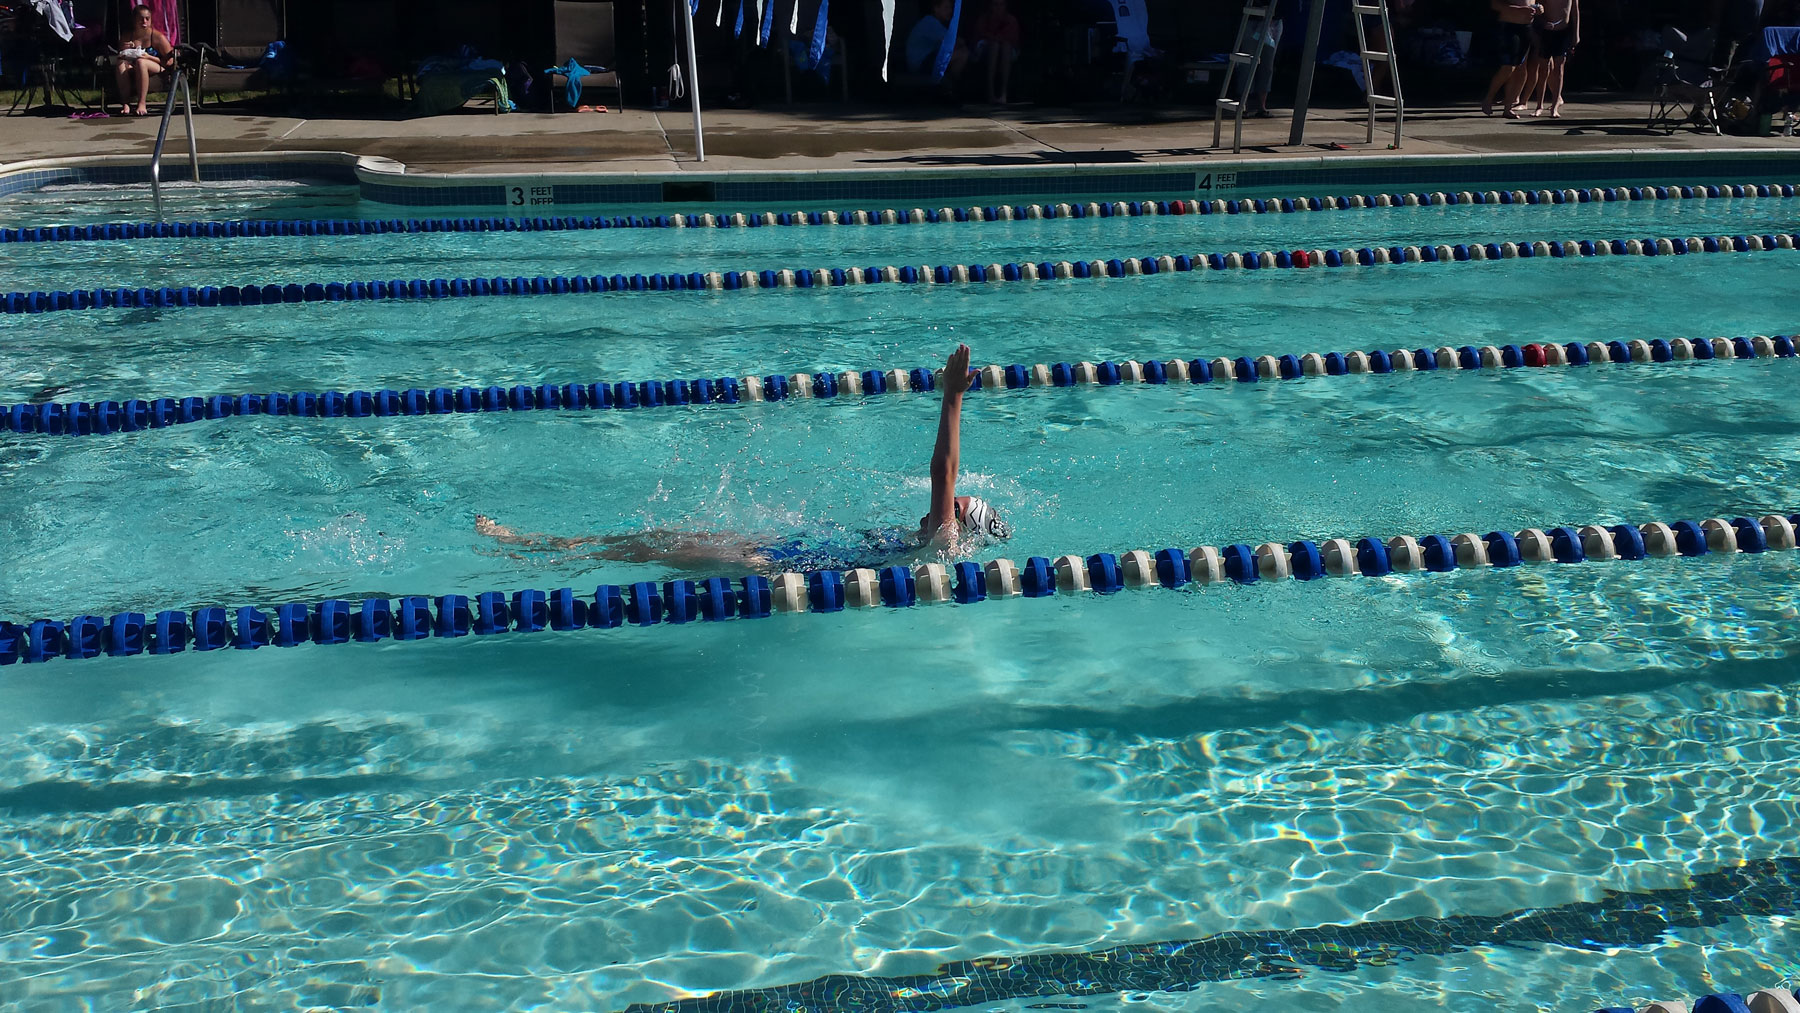 Swimmer racing in lanes